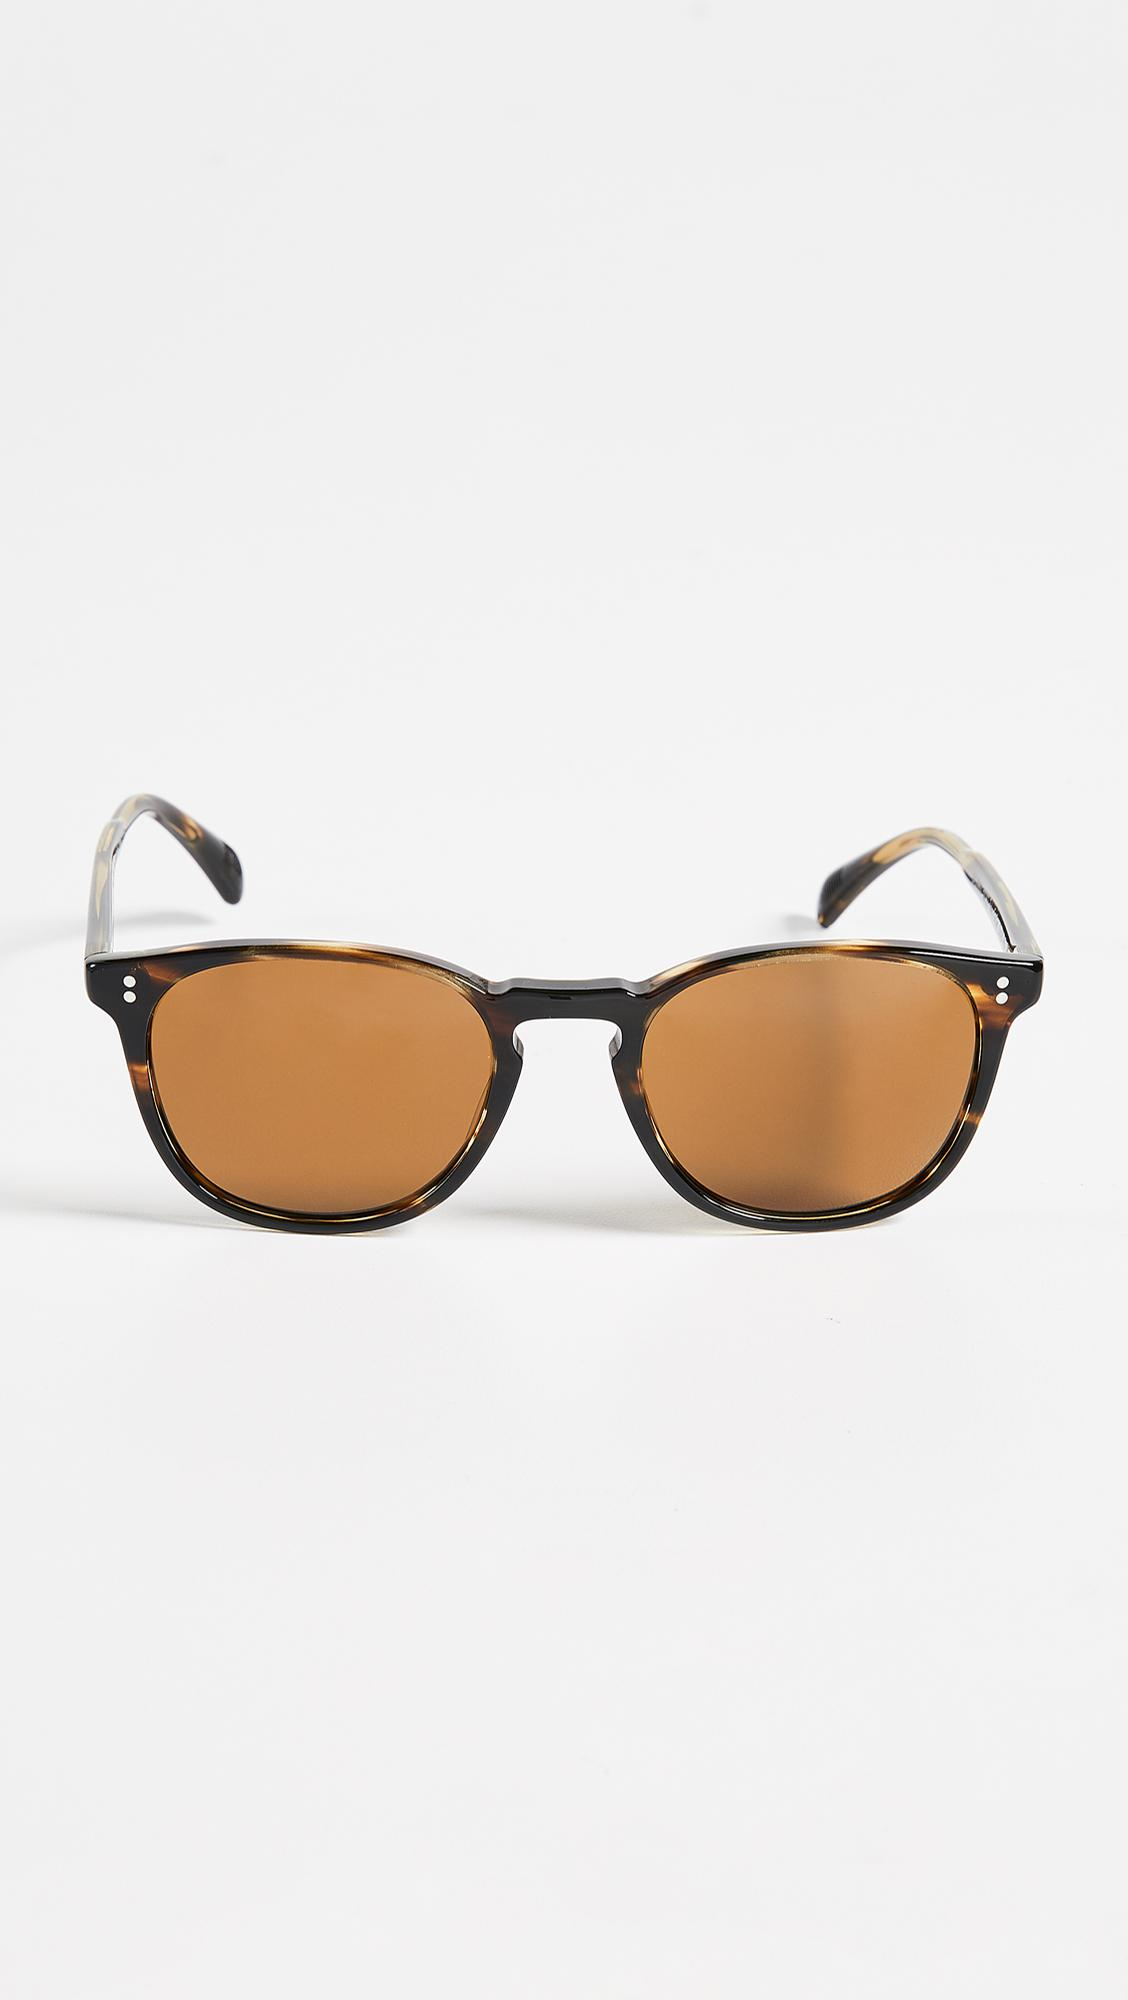 3176e163fa9 Lyst - Oliver Peoples Finley Esquire Sunglasses in Brown for Men